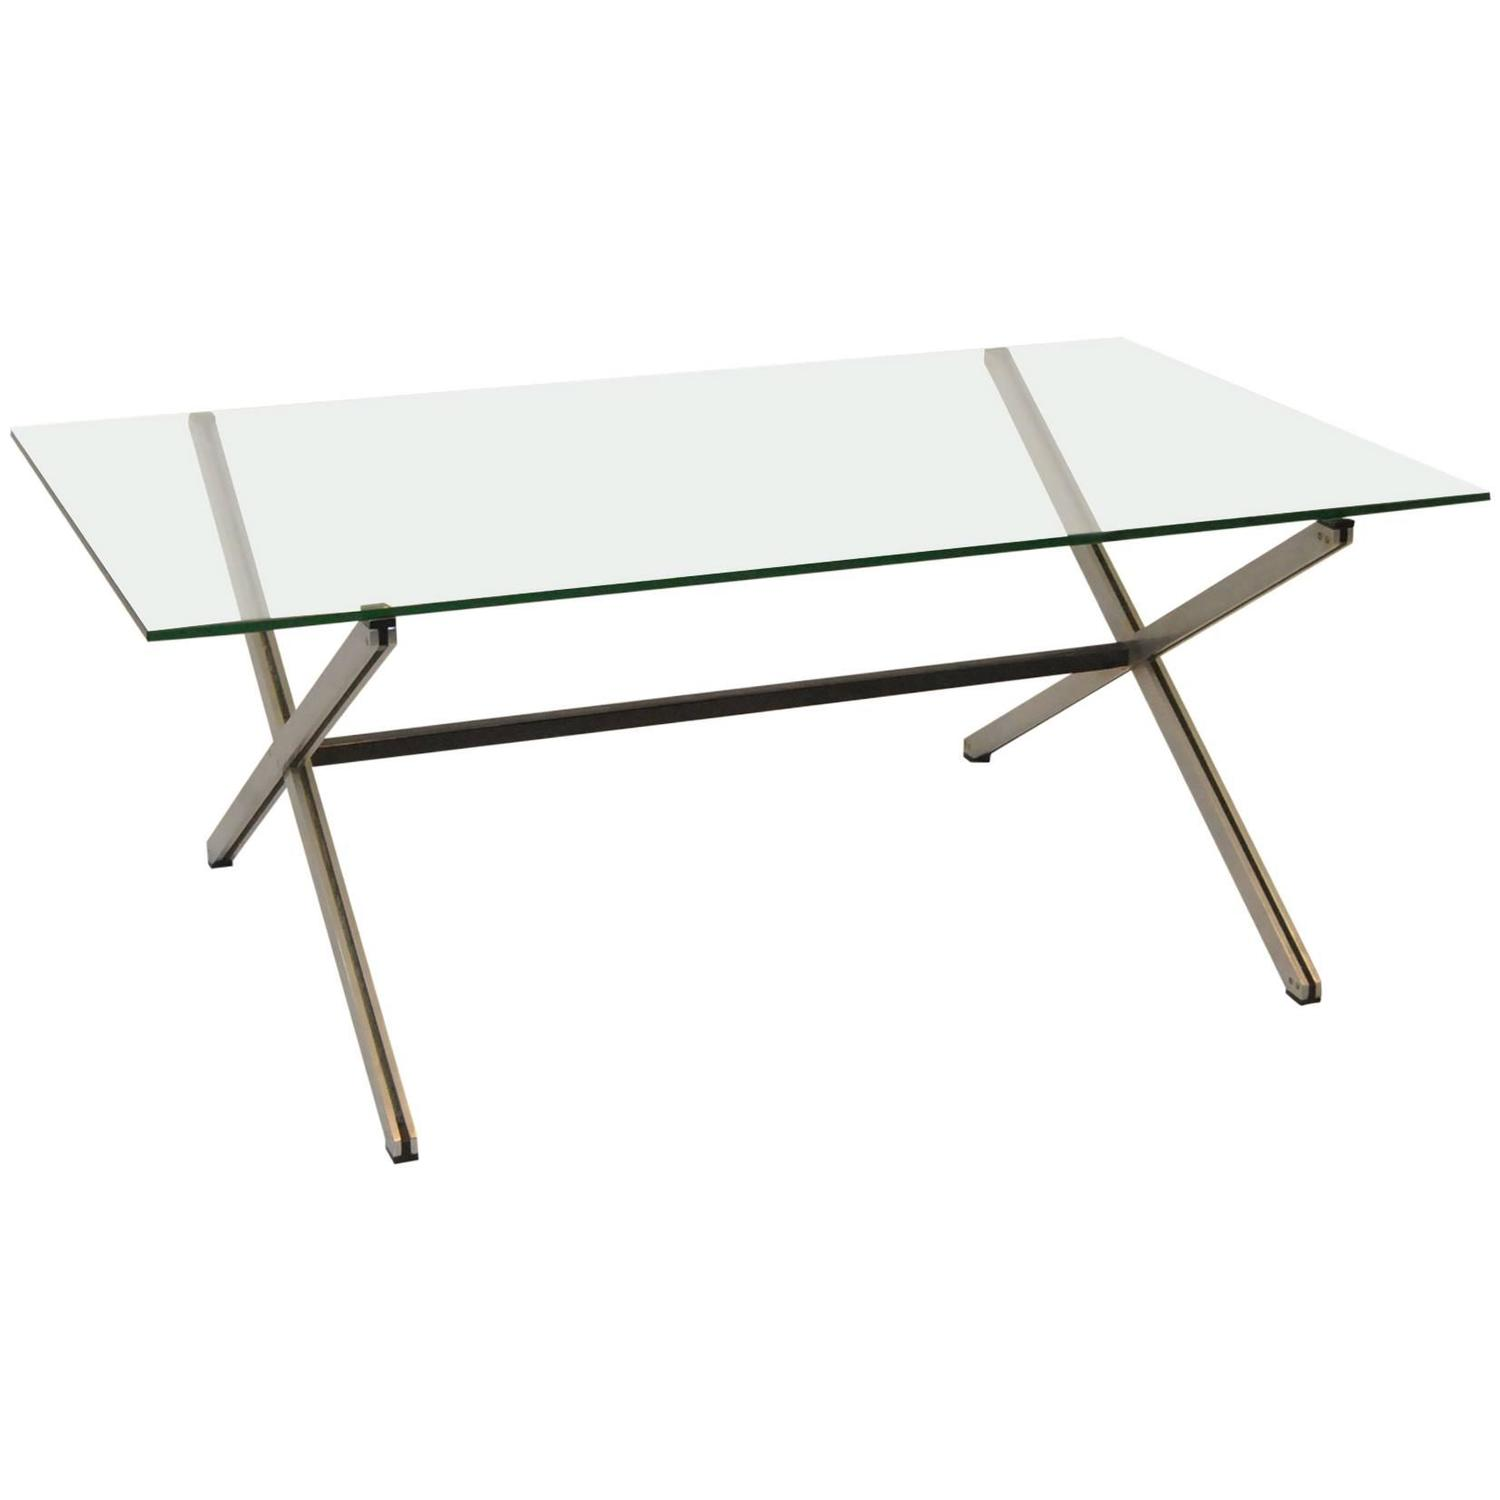 Mid century modern glass top parallel cocktail table by for Contemporary glass cocktail tables